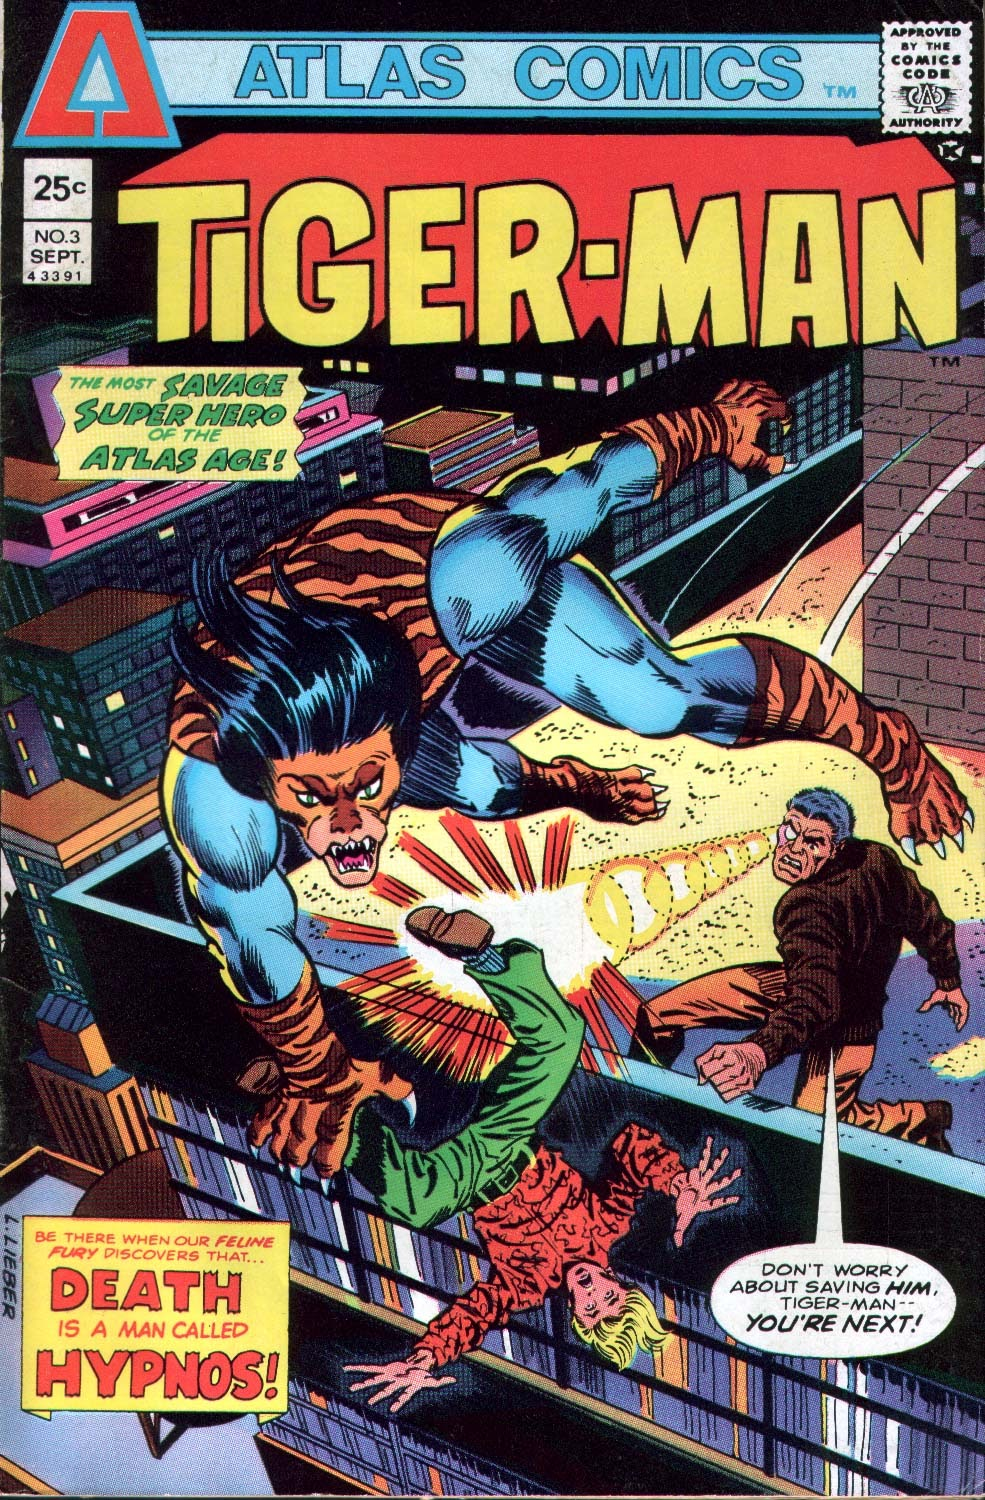 Read online Tiger-Man comic -  Issue #3 - 1